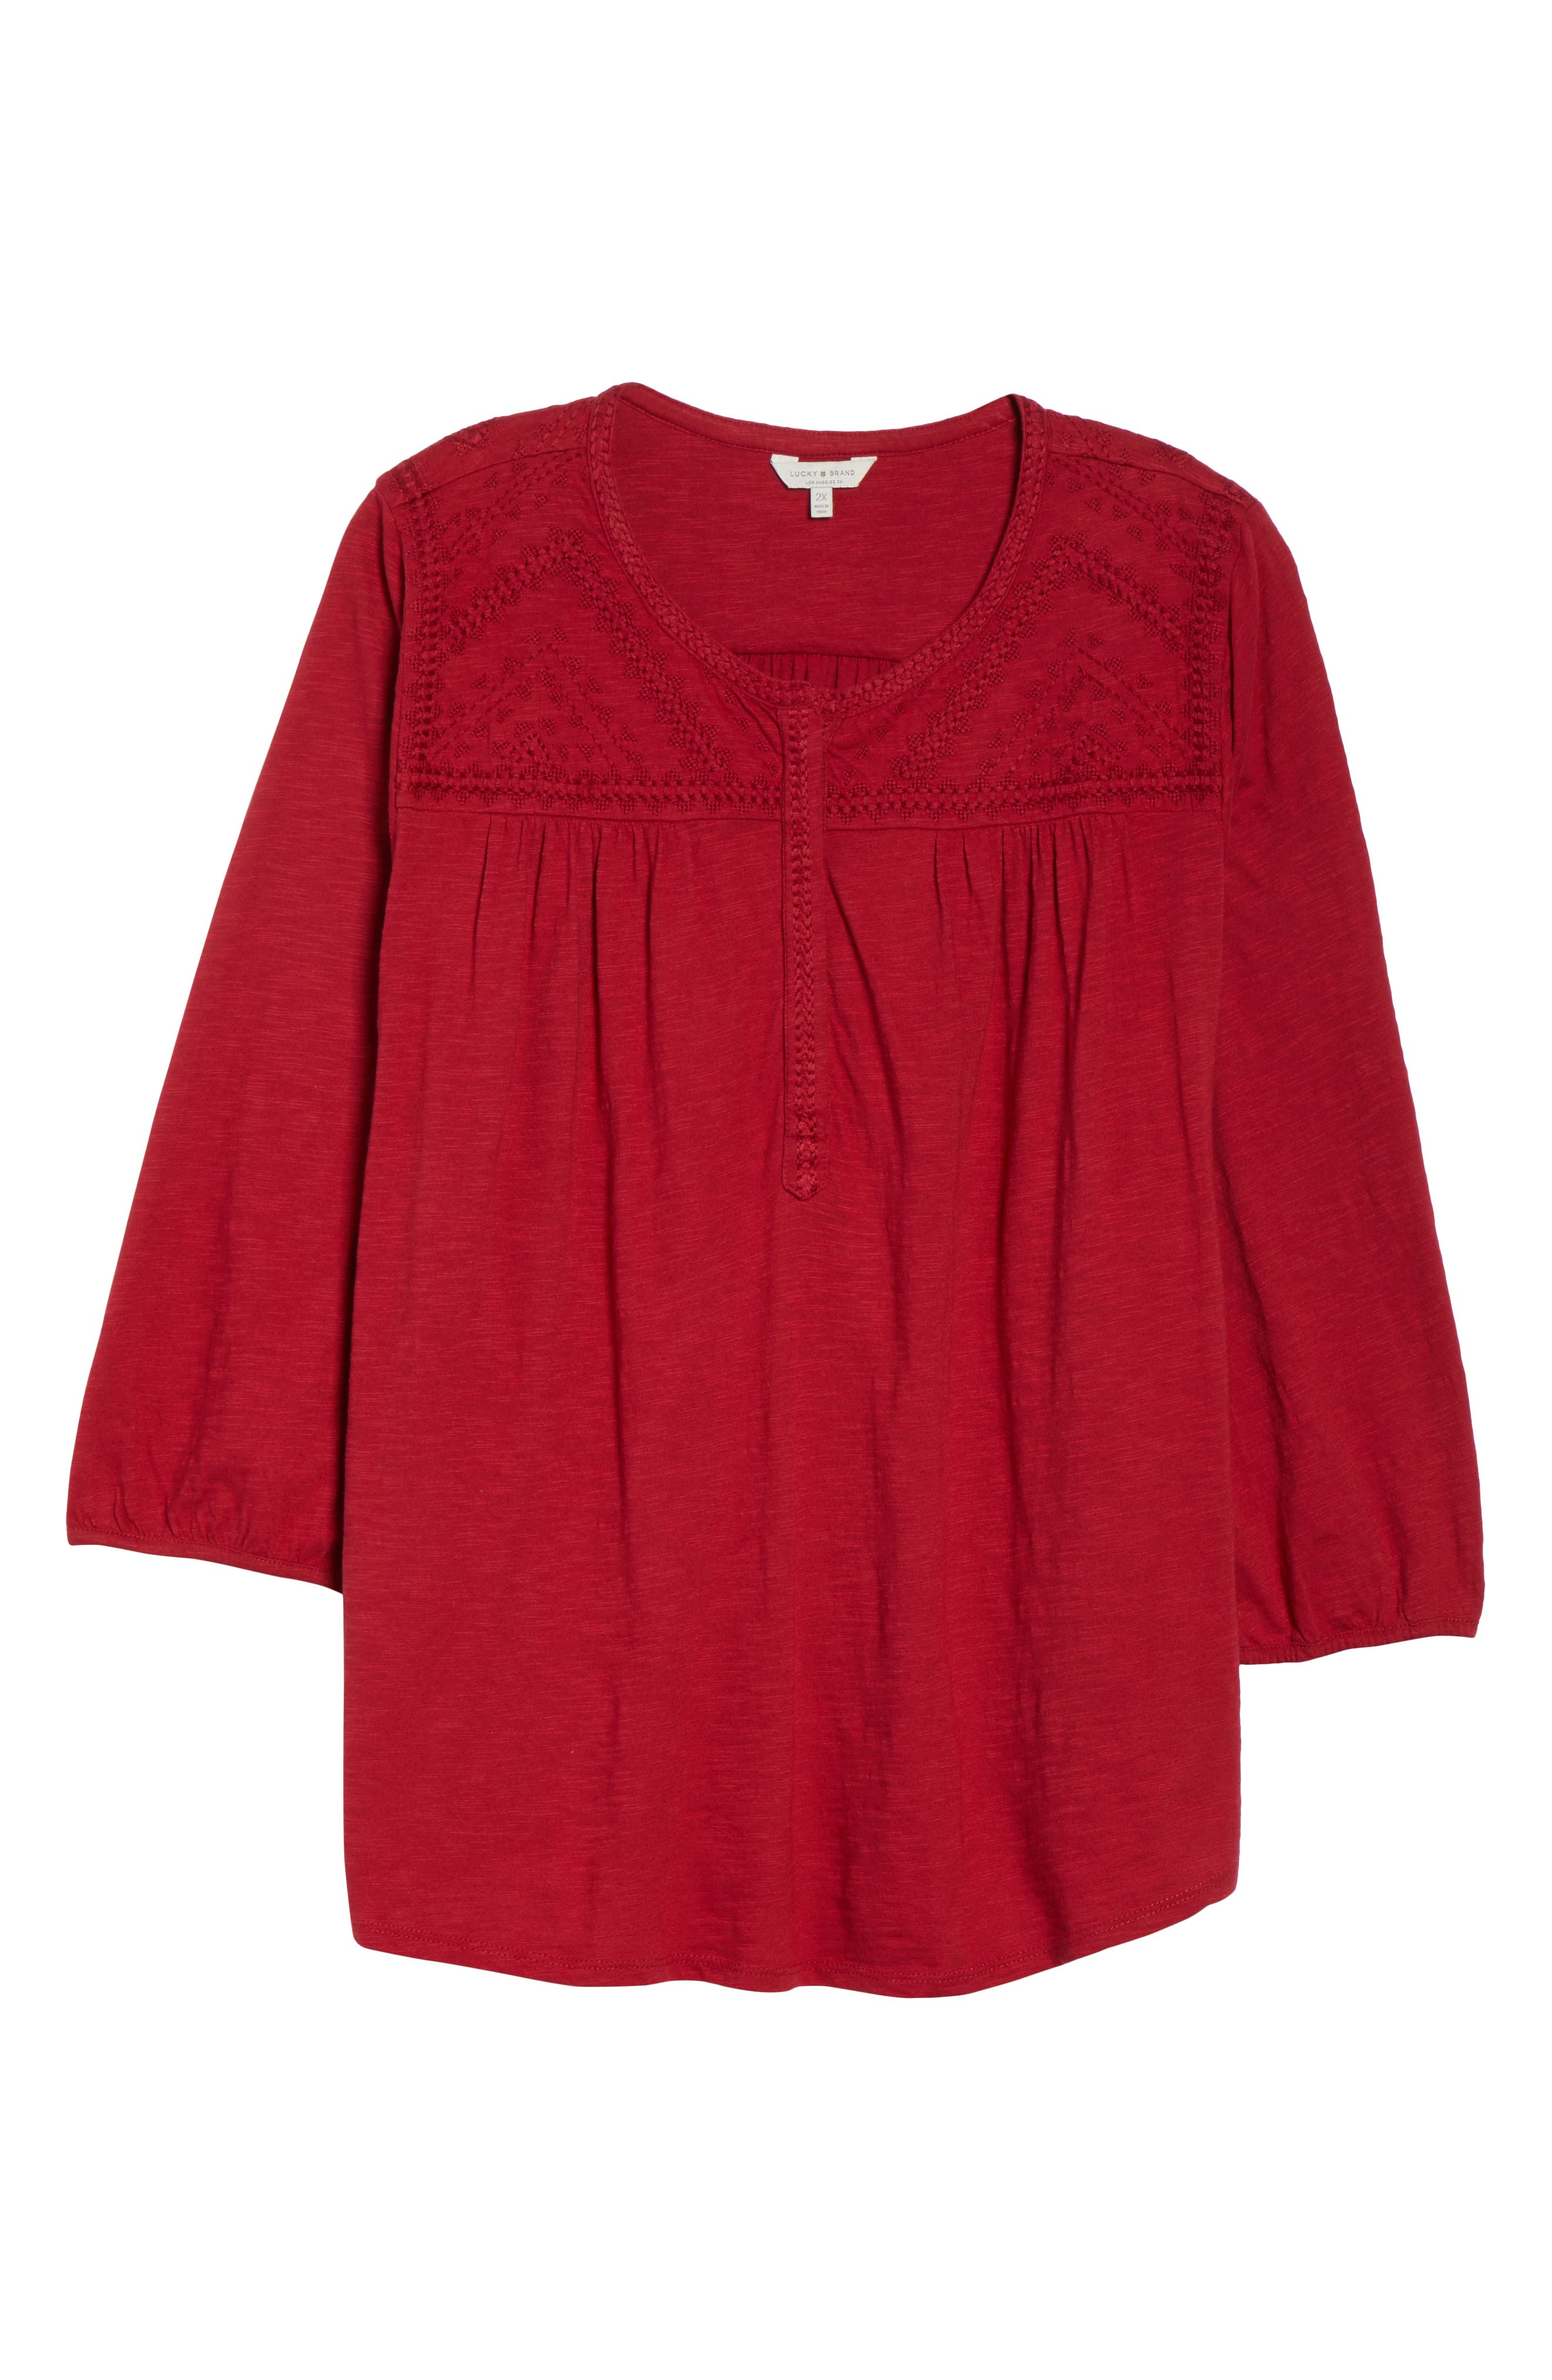 Embroidered Top,                             Alternate thumbnail 6, color,                             600